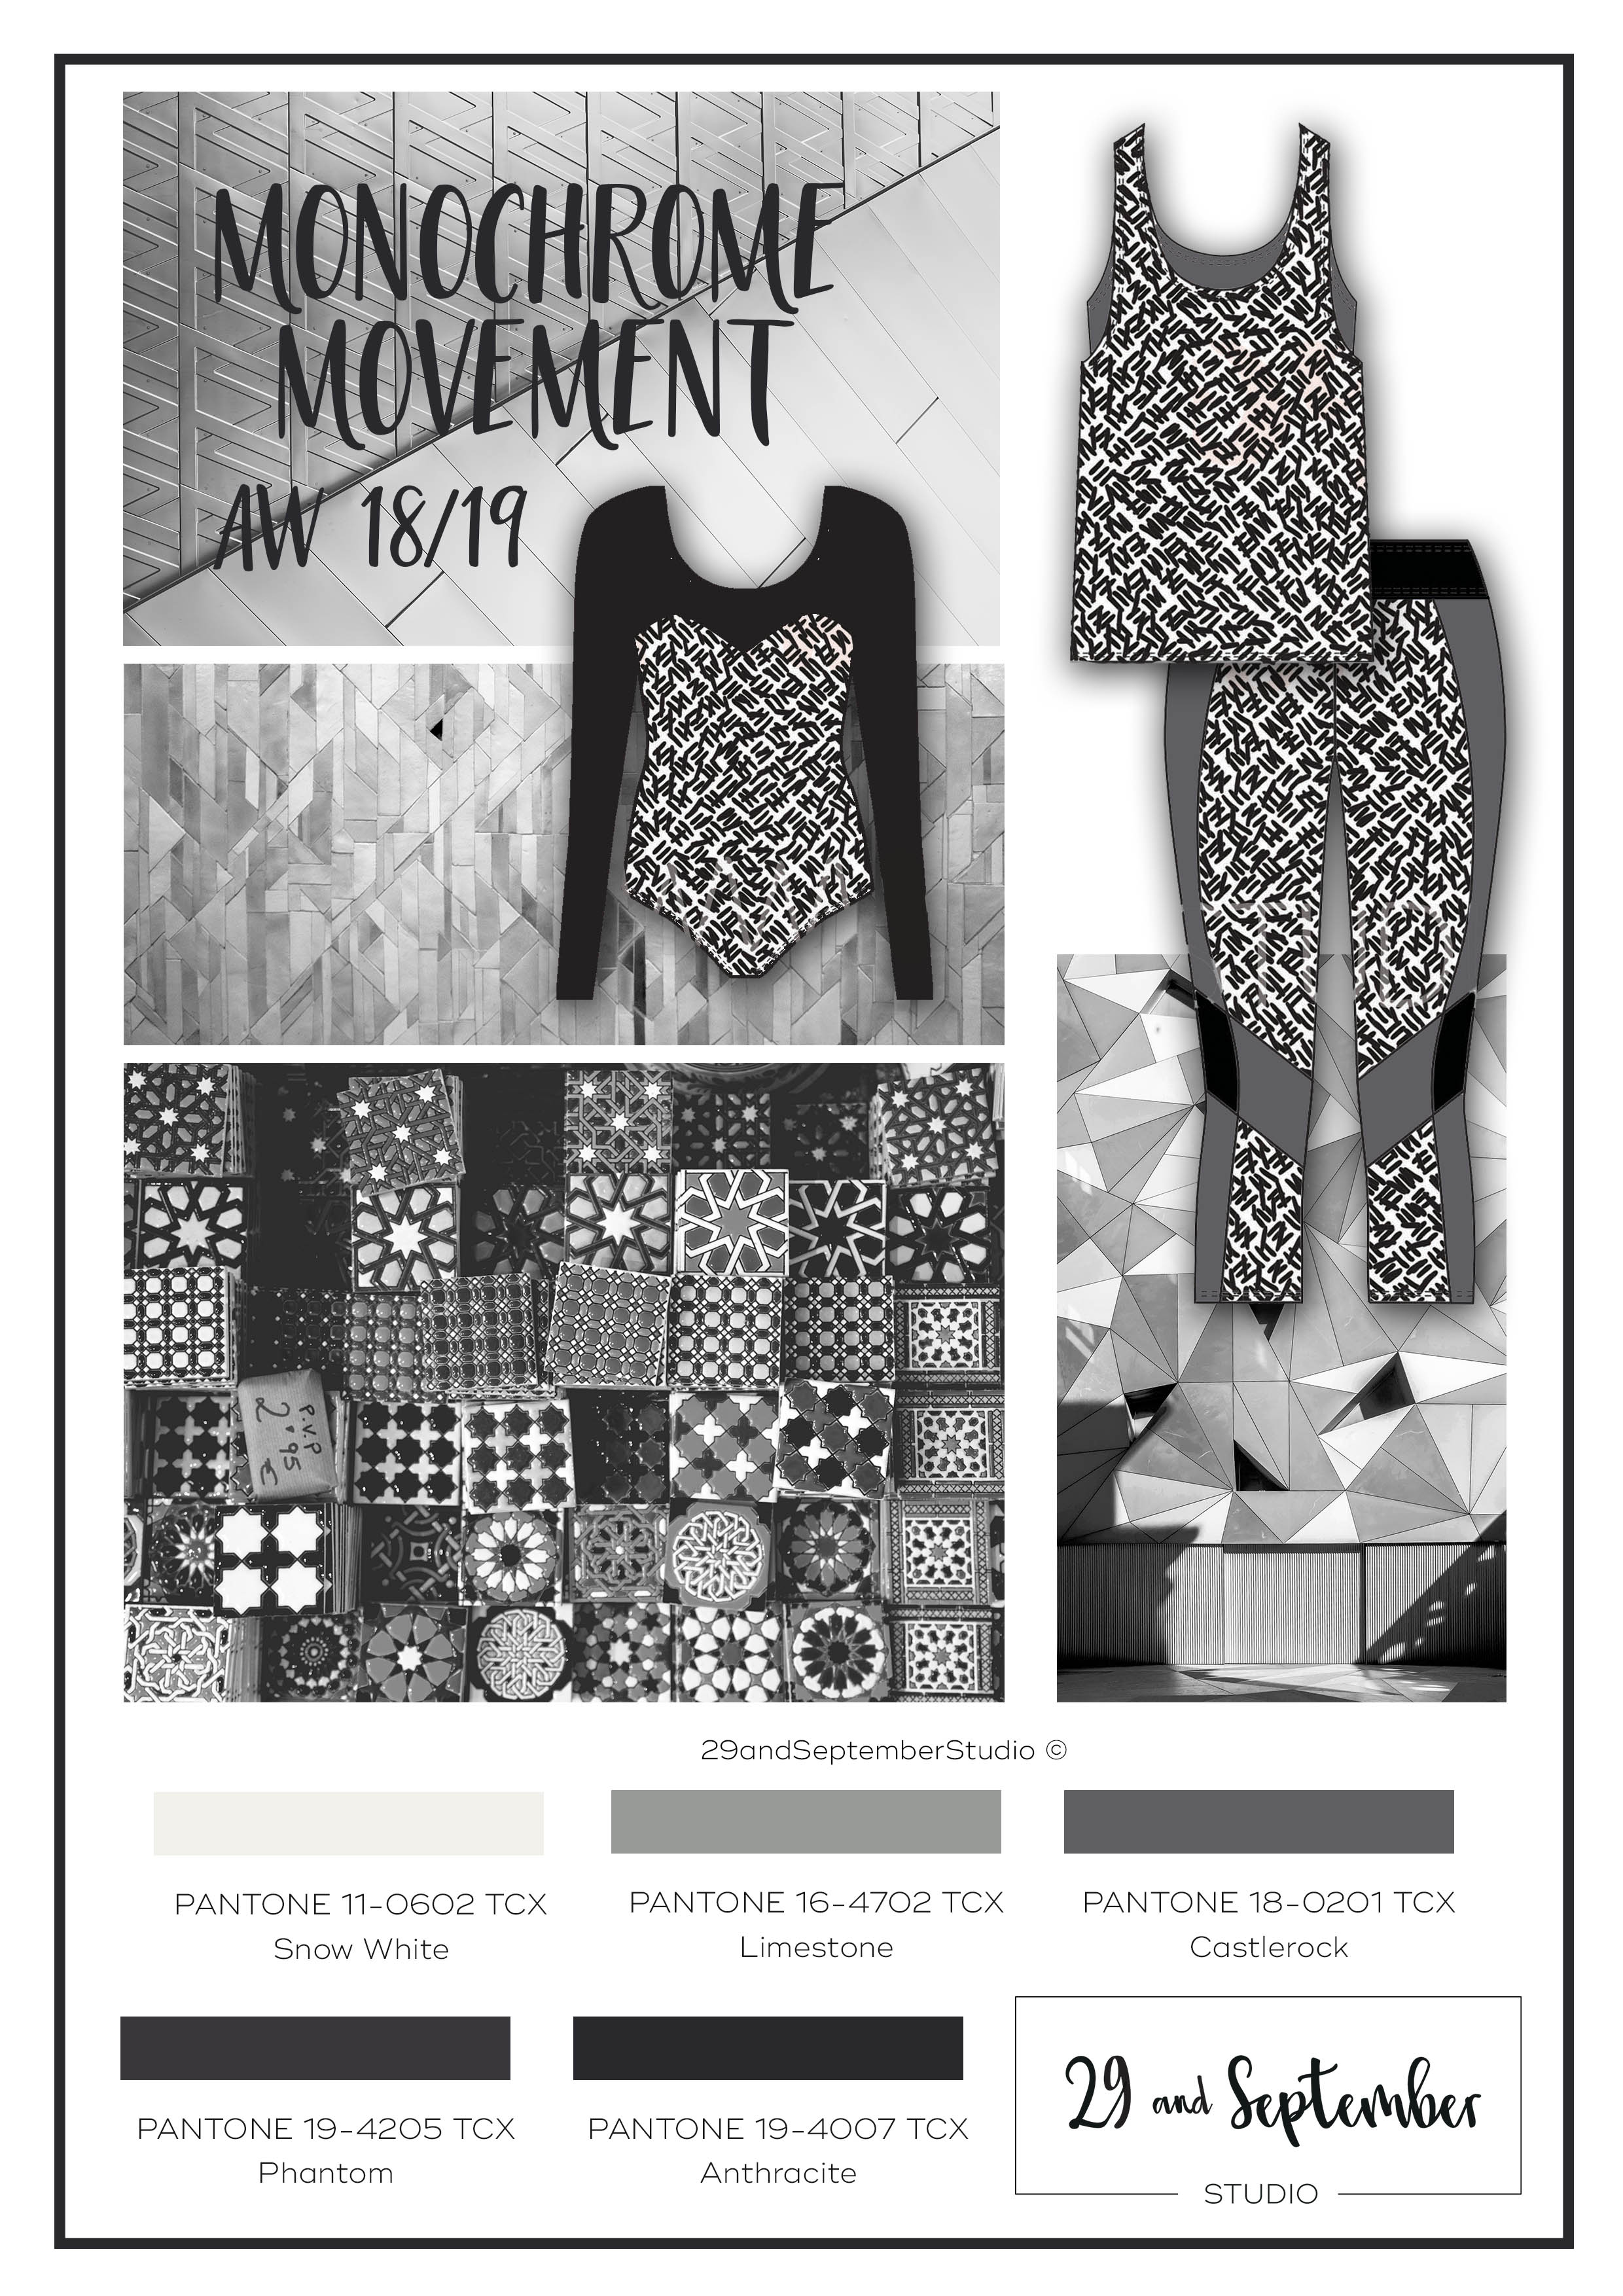 F/W 2018/19 activewear trends; Monochrome Movement | Woman's fashion inspiration | technical drawings for apparel by 29andSeptember Studio | Free fashion trend information | WGSN